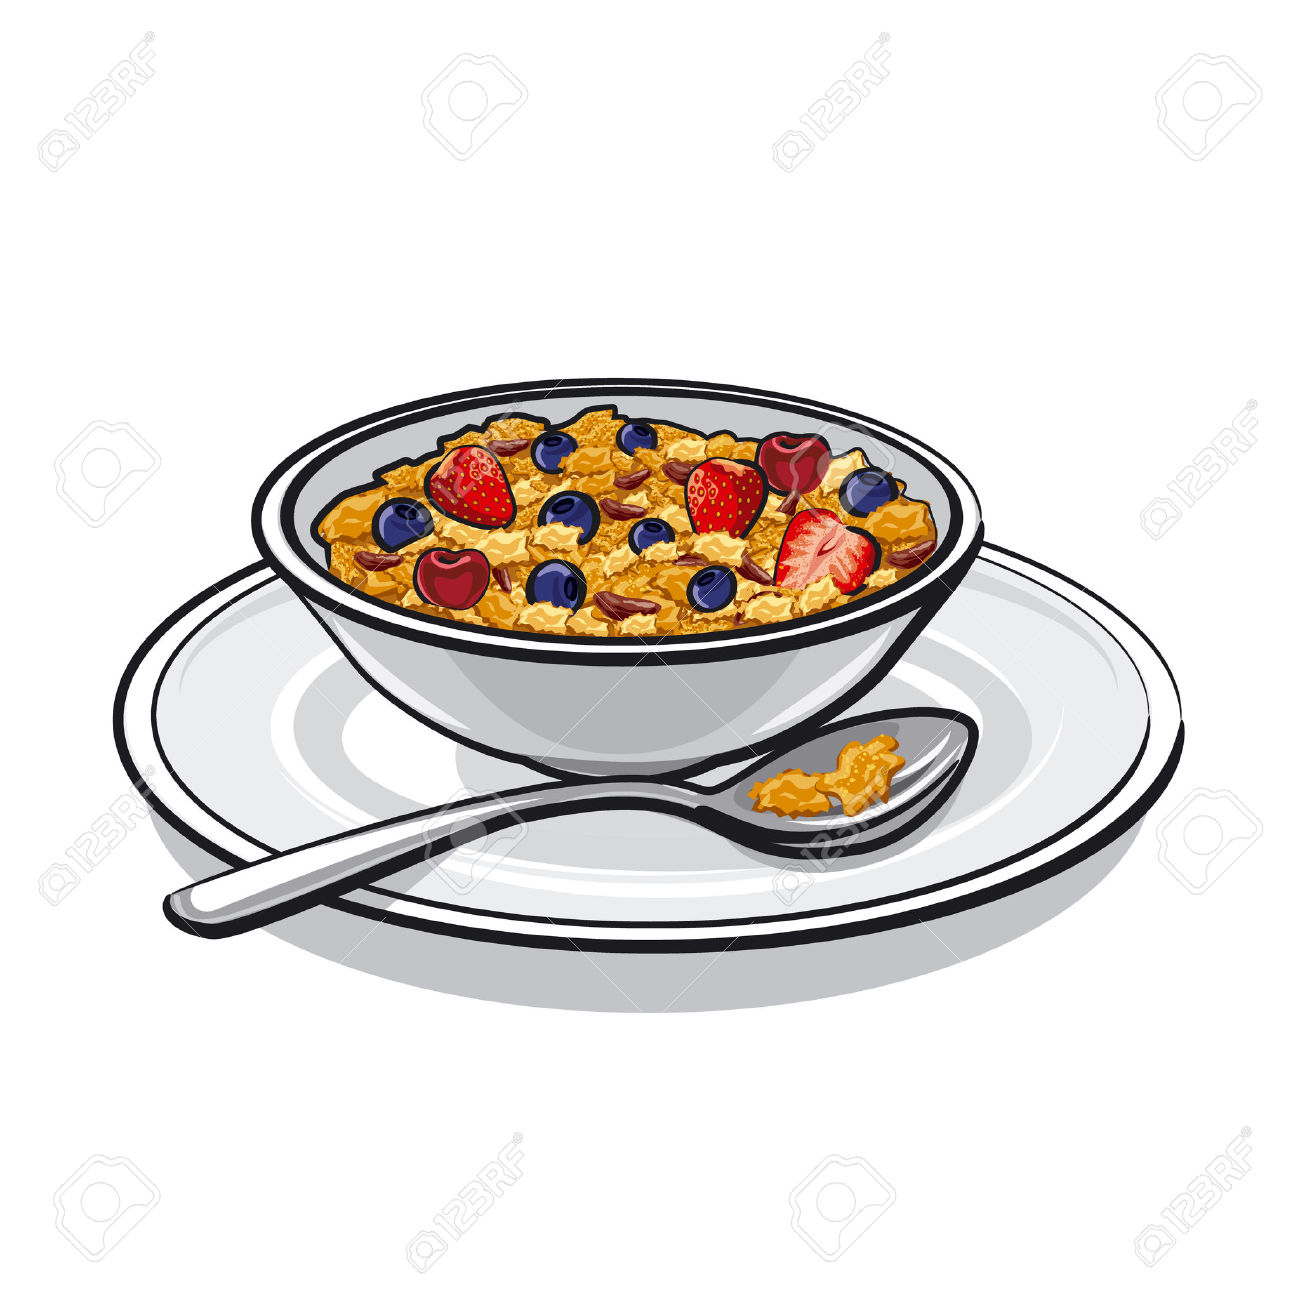 416 Muesli Stock Illustrations, Cliparts And Royalty Free Muesli.